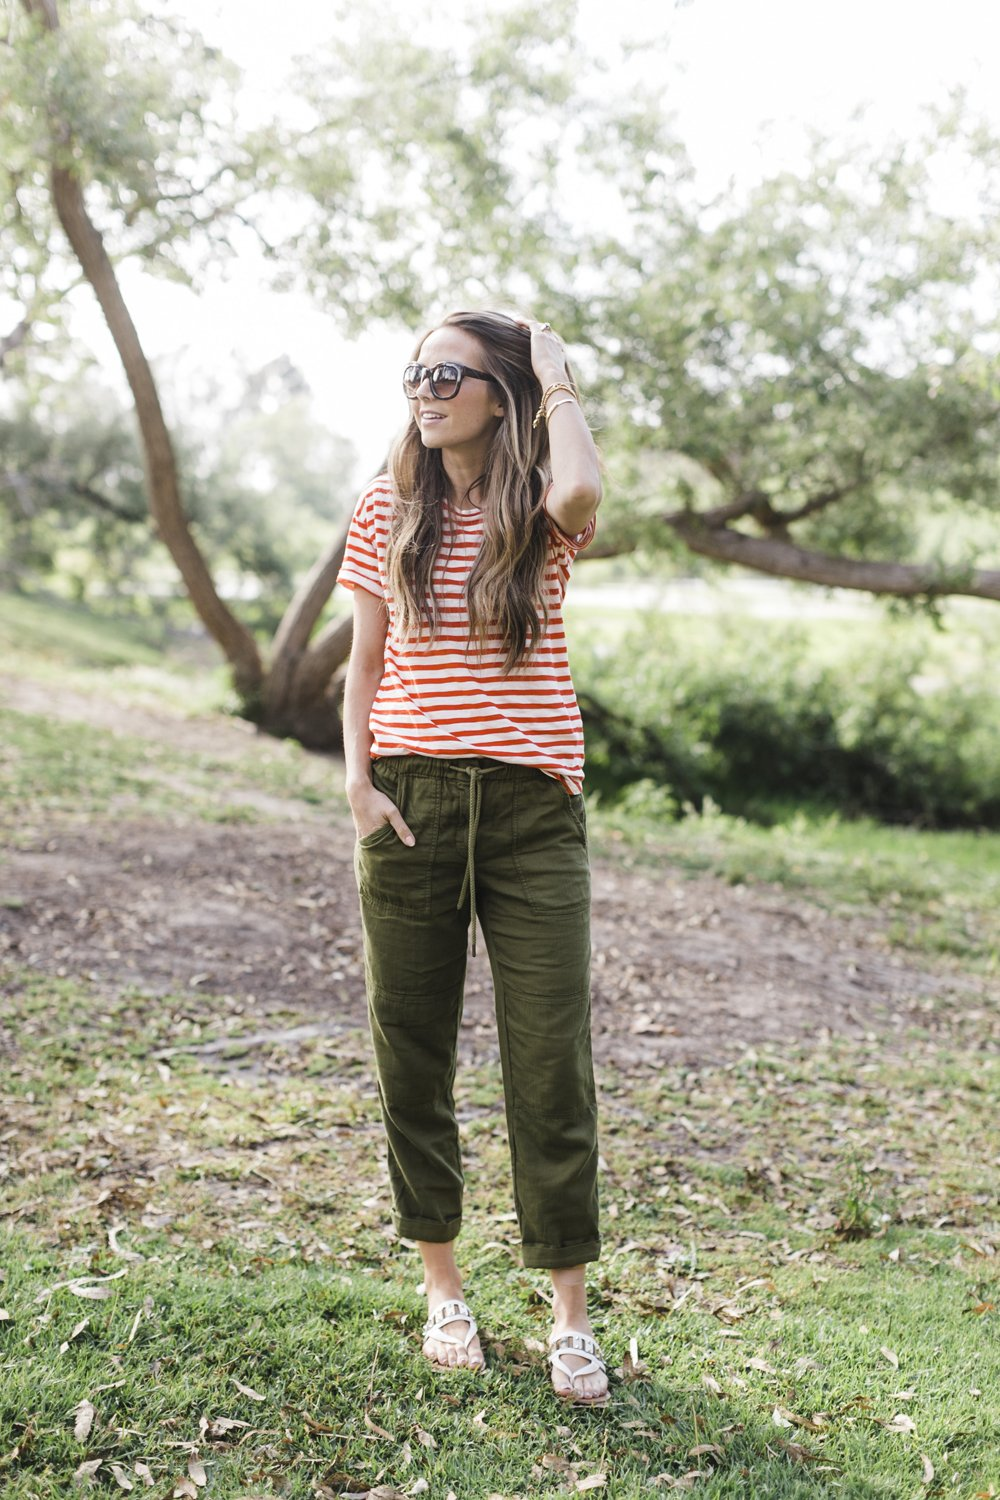 Merrick's Art | J.Crew Pants, Madewell Top